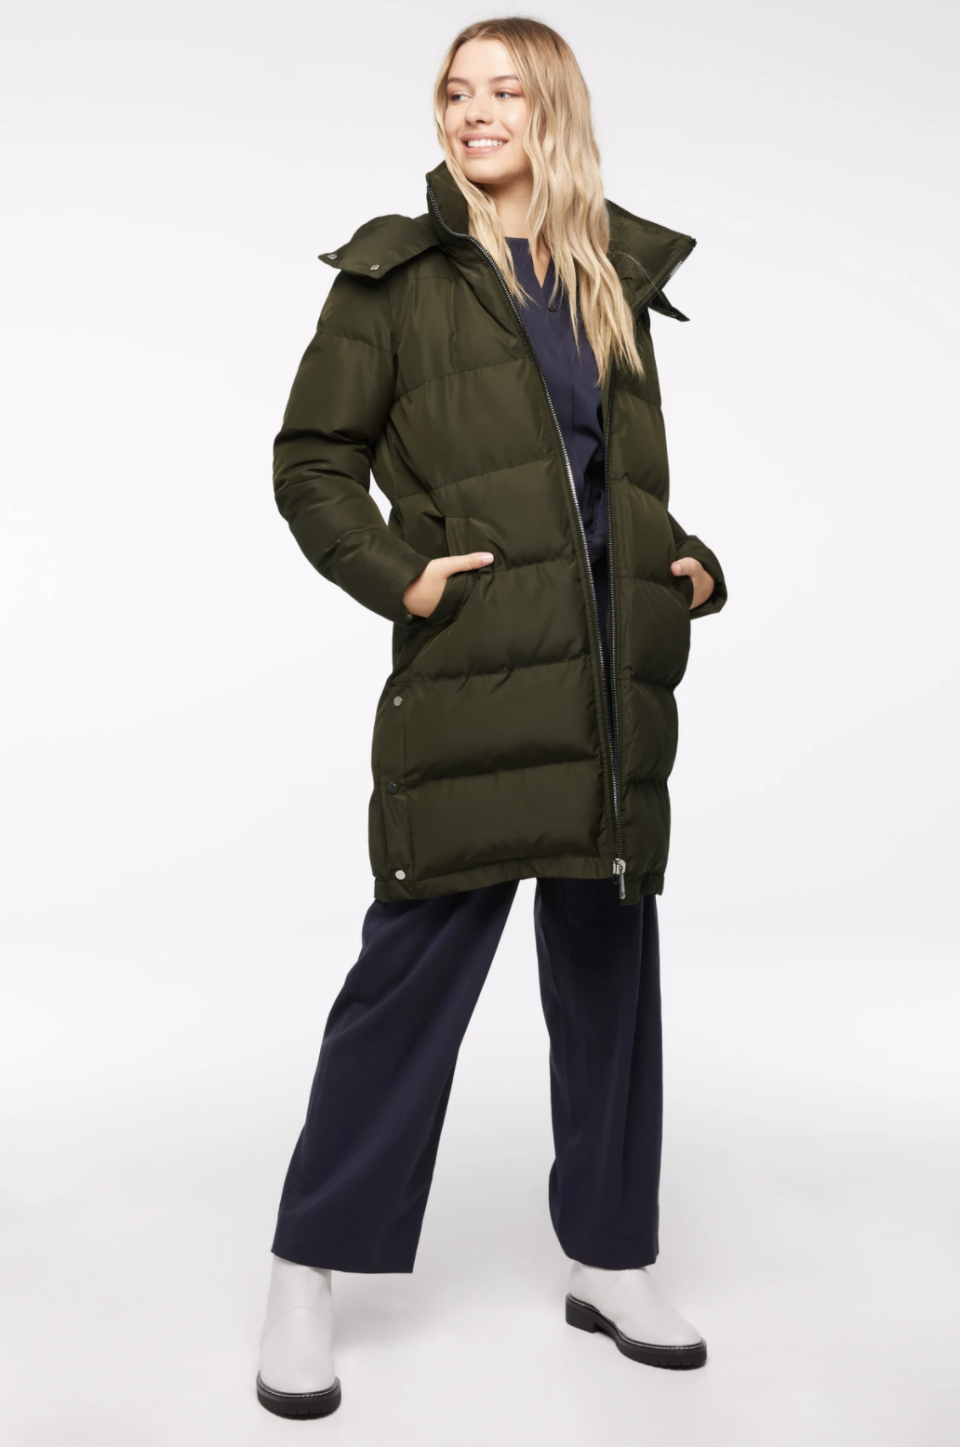 Mat and Nat Giada Puffer Jacket - $225 (originally $375)